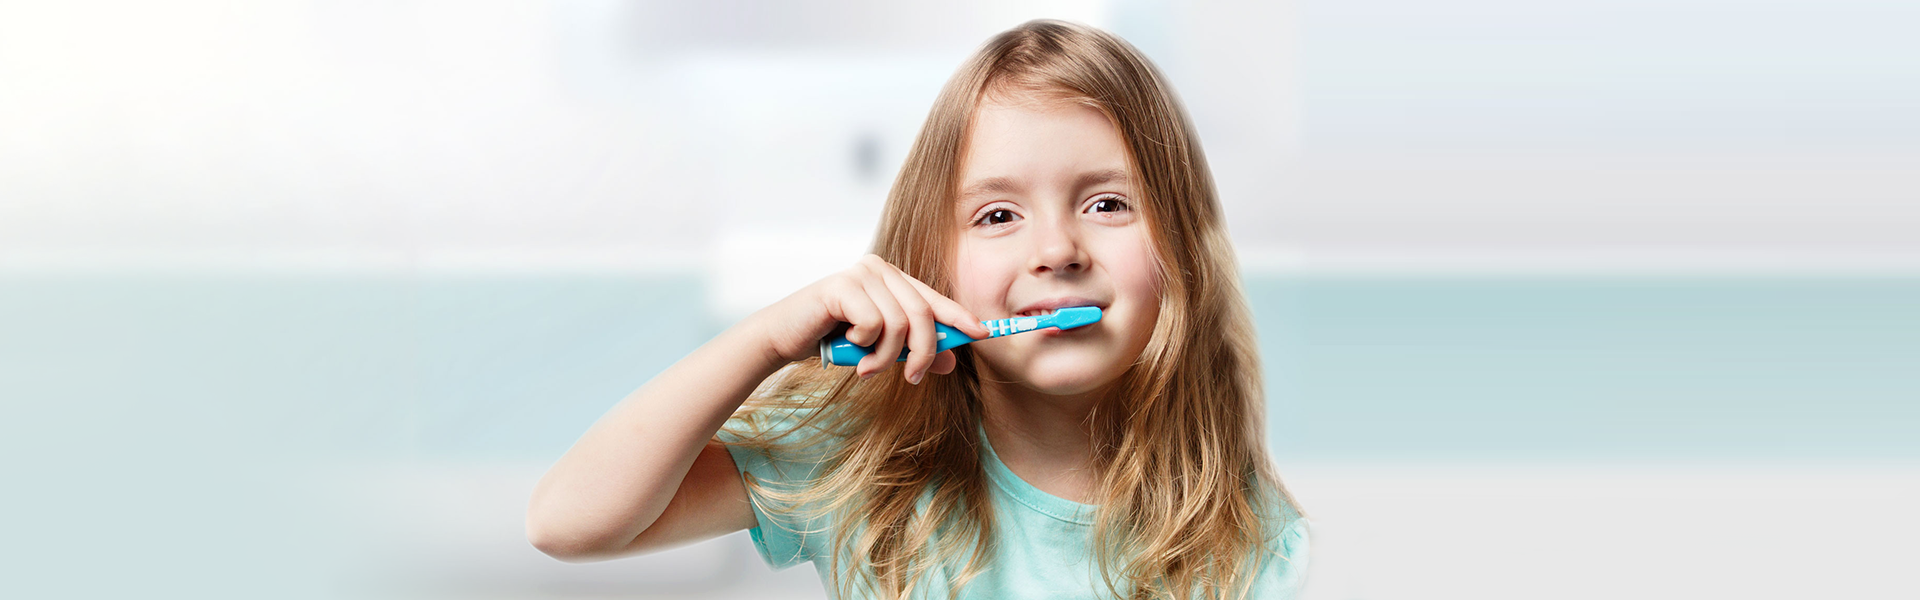 Children's Dentistry And Its Benefits